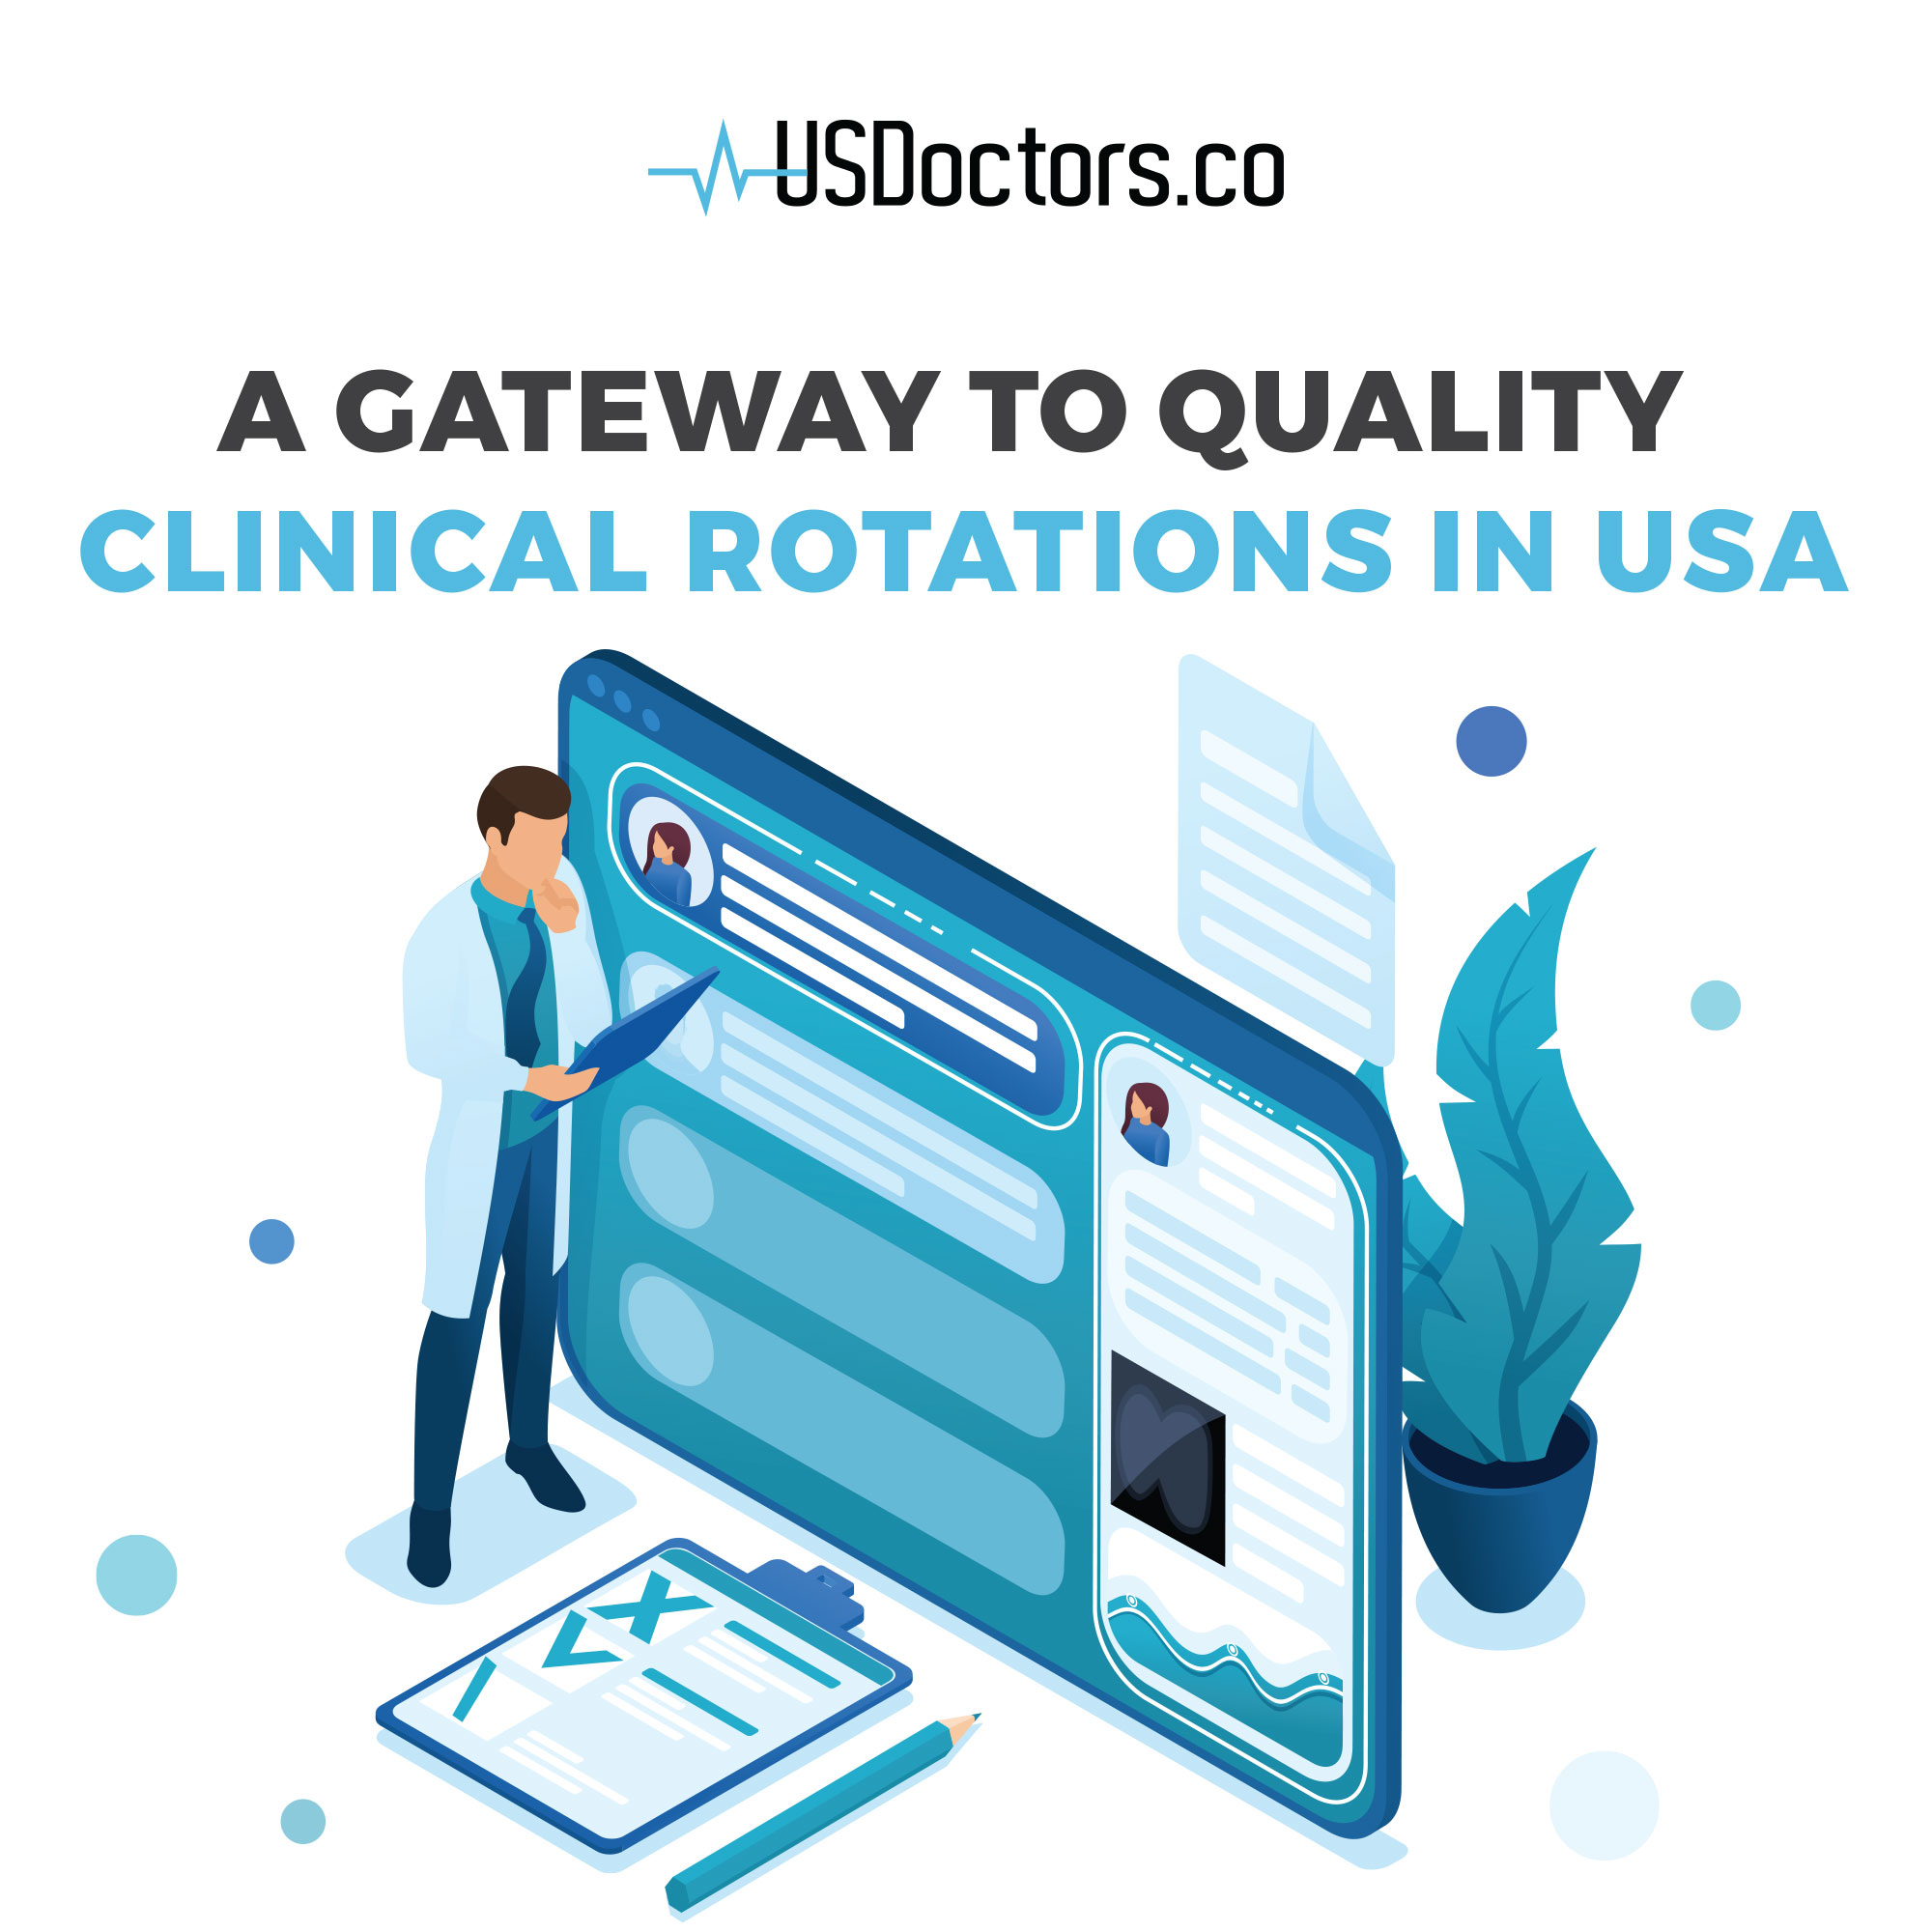 Clinical rotations in USA